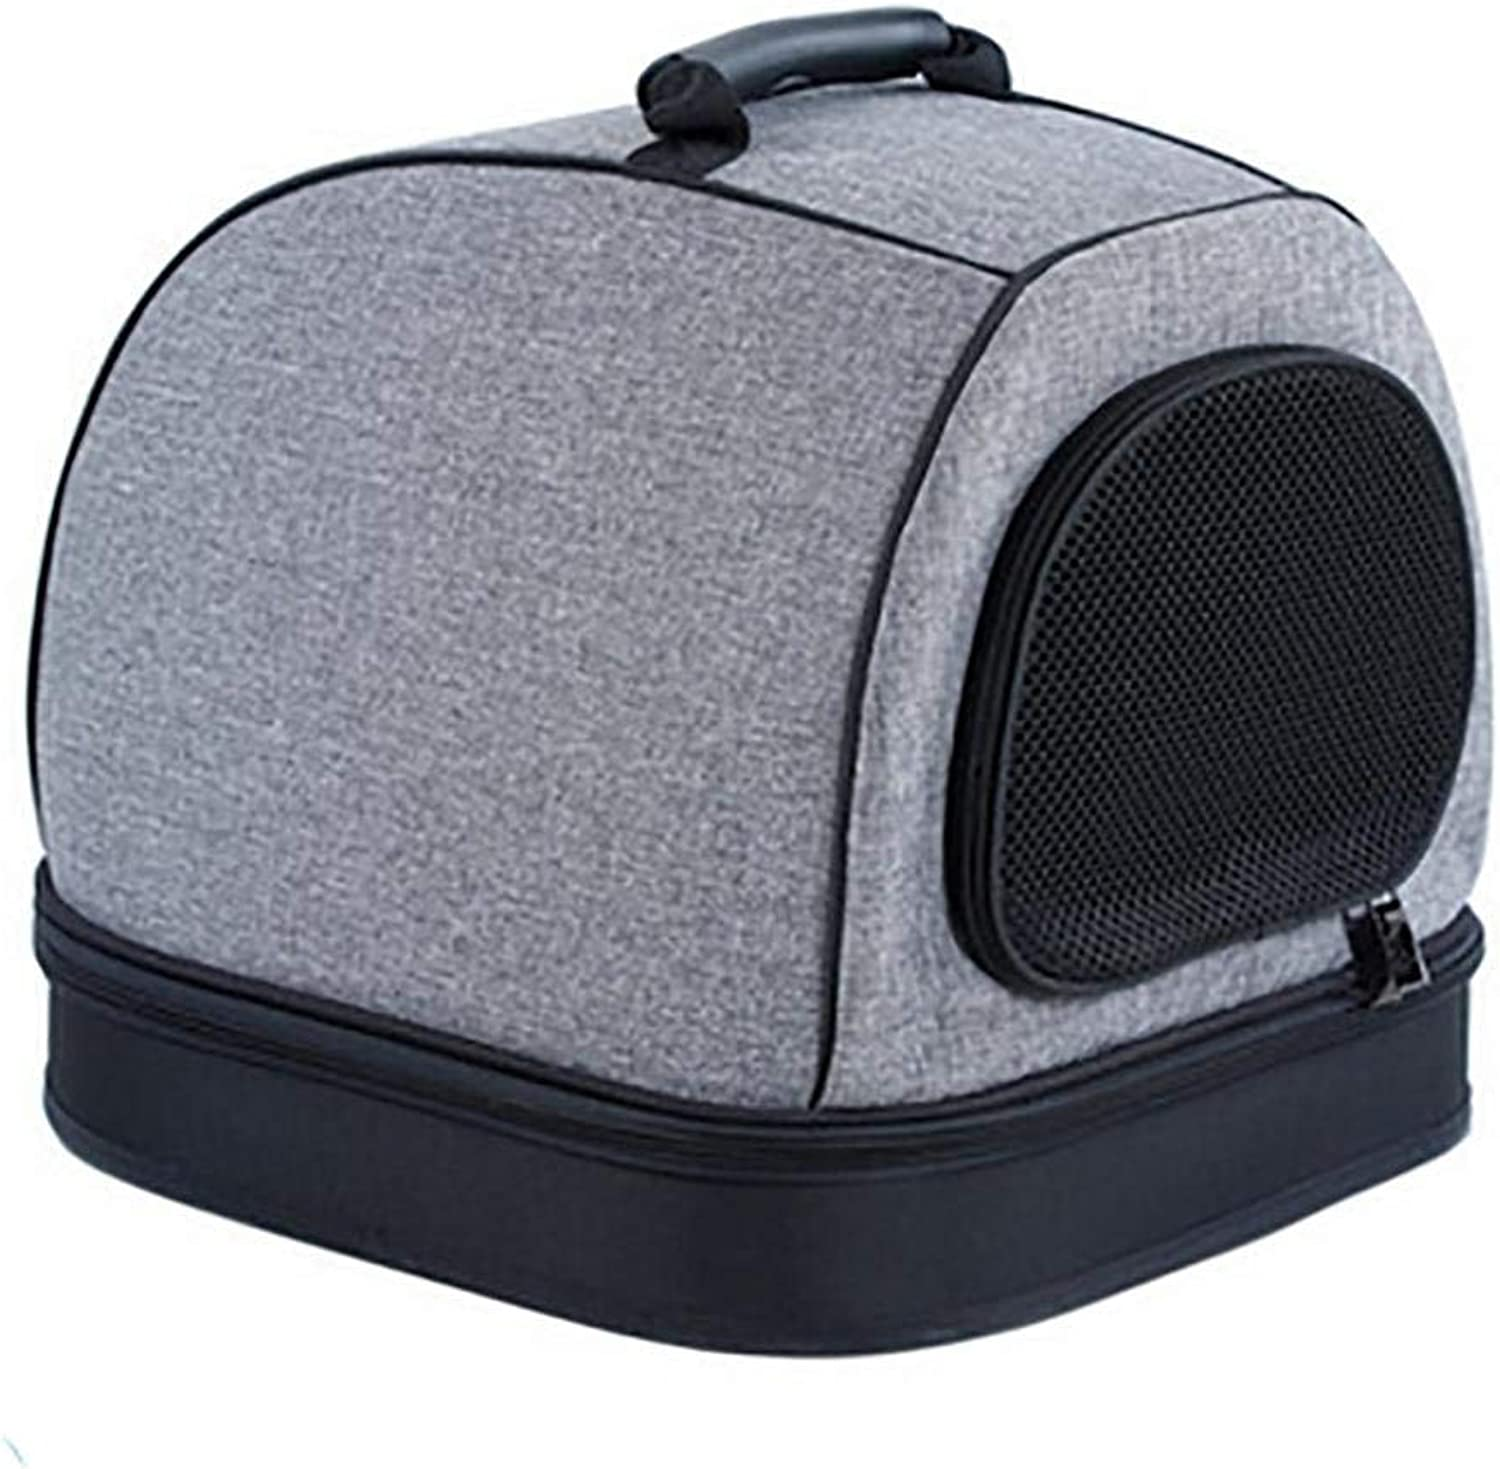 IF.HLMF Foldable Pet Carrier Travel Kennel Cat Backpack House for Small Animals